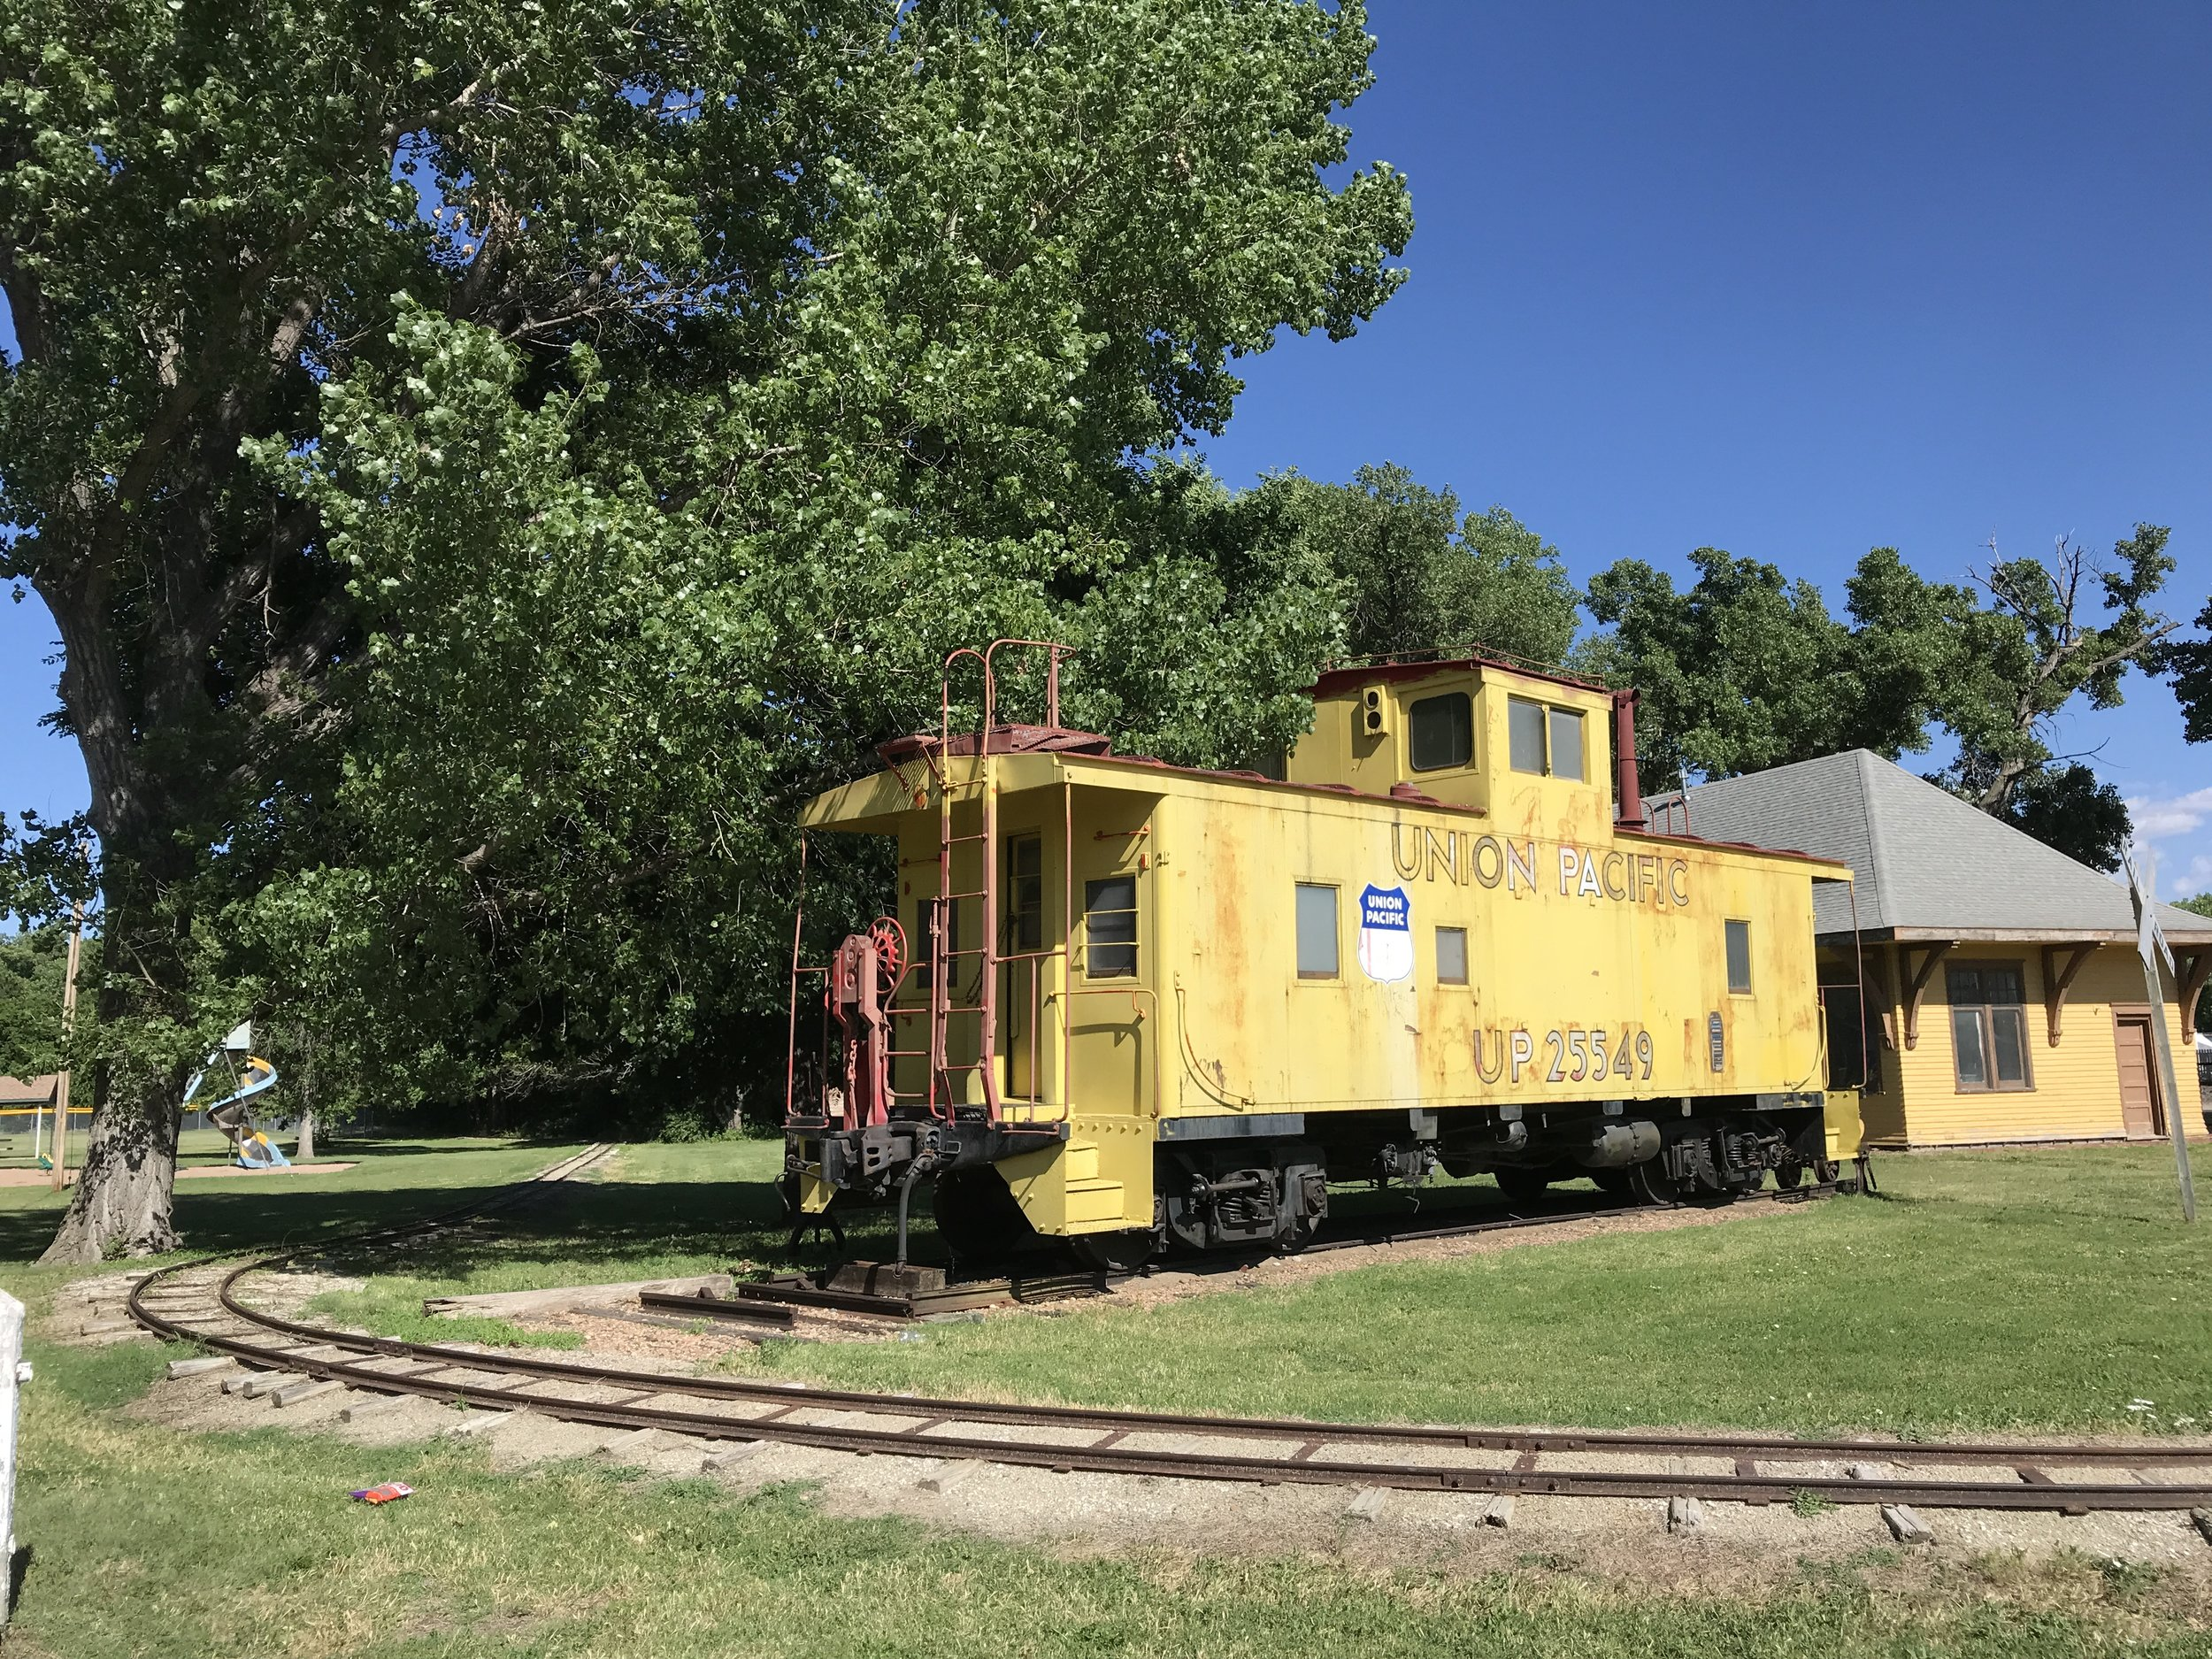 Outside the train museum in Ellis, KS.  The train tracks were for a miniature train that you can ride on the weekends - similar to the one at Balboa Park in San Diego.